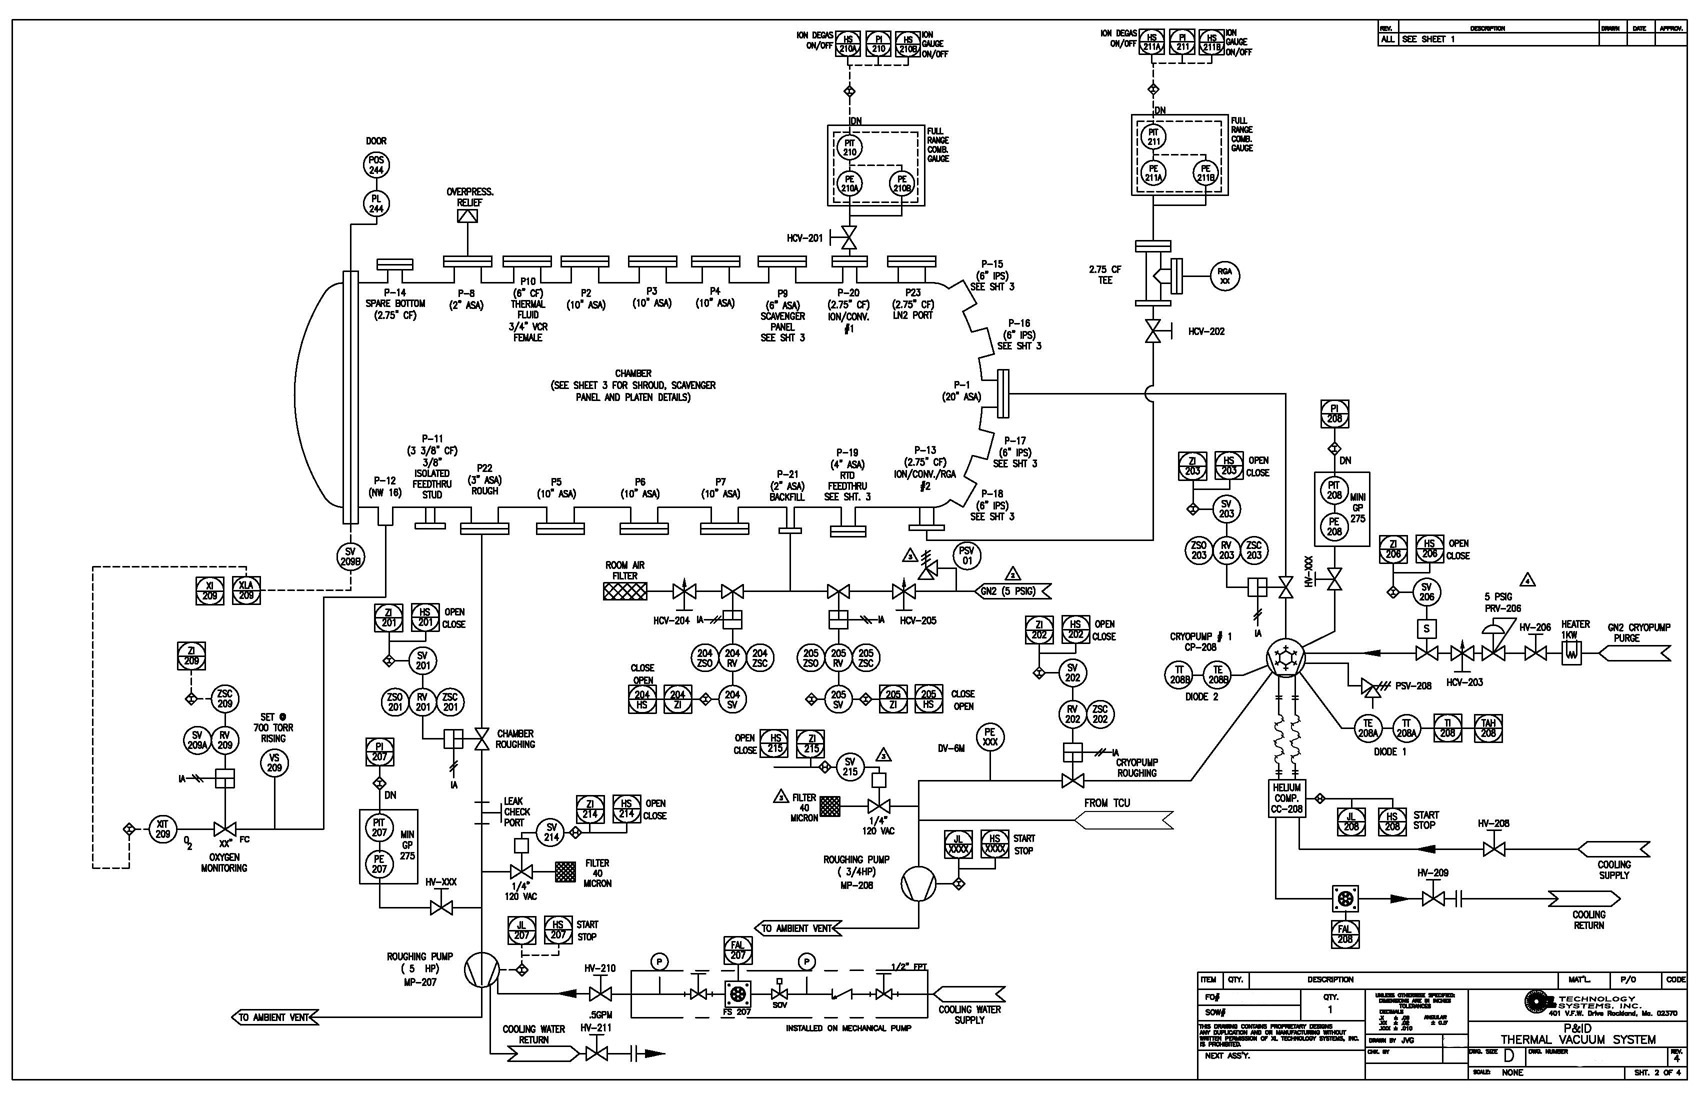 hight resolution of p id logic diagram wiring library rh 35 skriptoase de pid diagram examples pid diagram examples